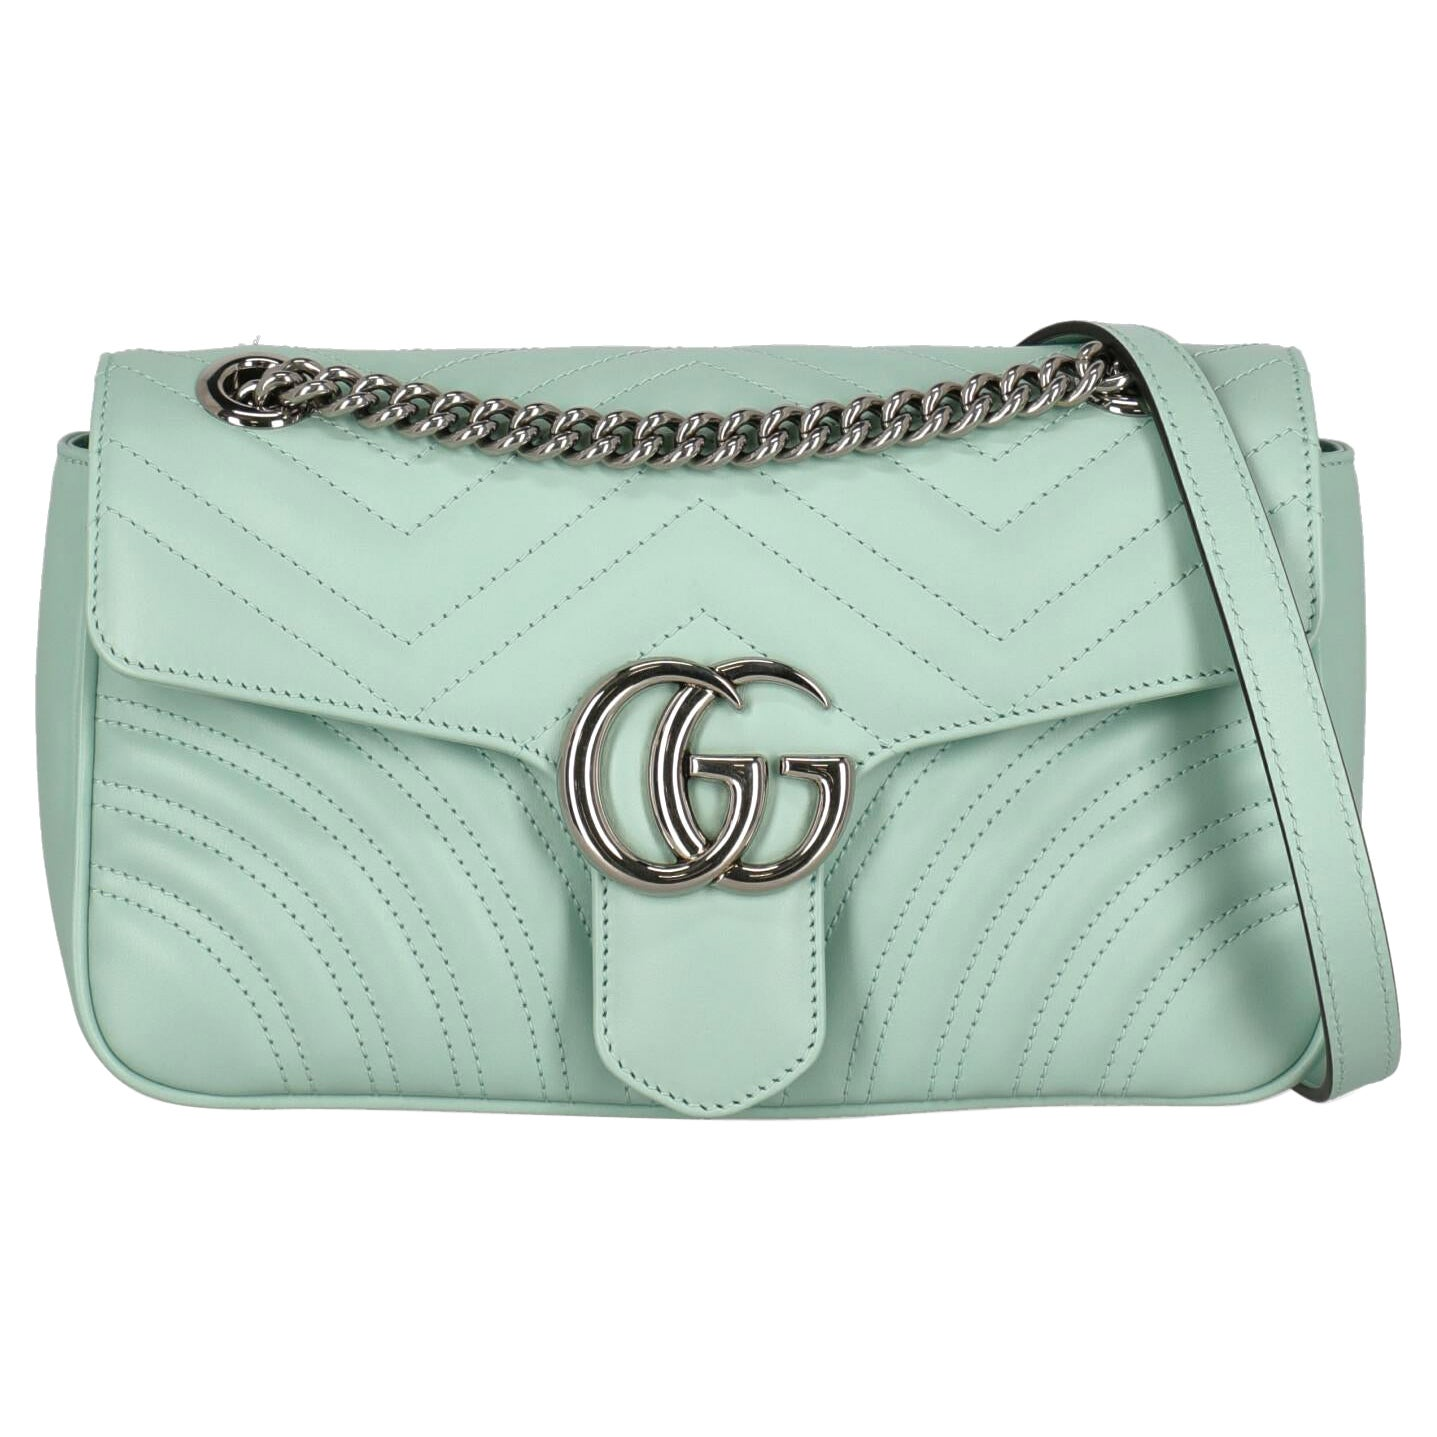 Gucci Women Shoulder bags Marmont Green Leather